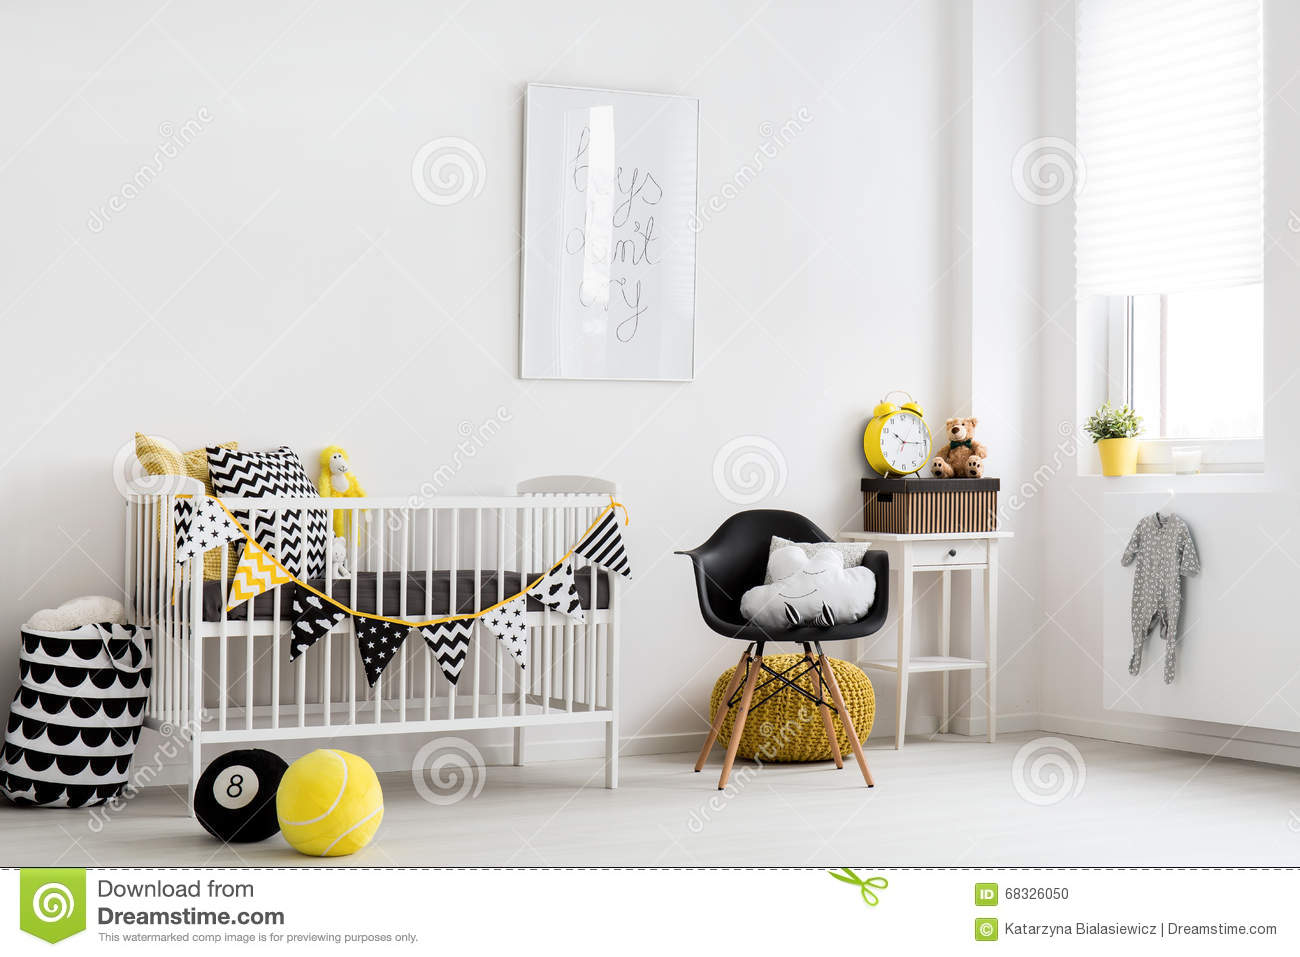 Scandinavian Inspiration For A Baby Room Stock Photo - Image of